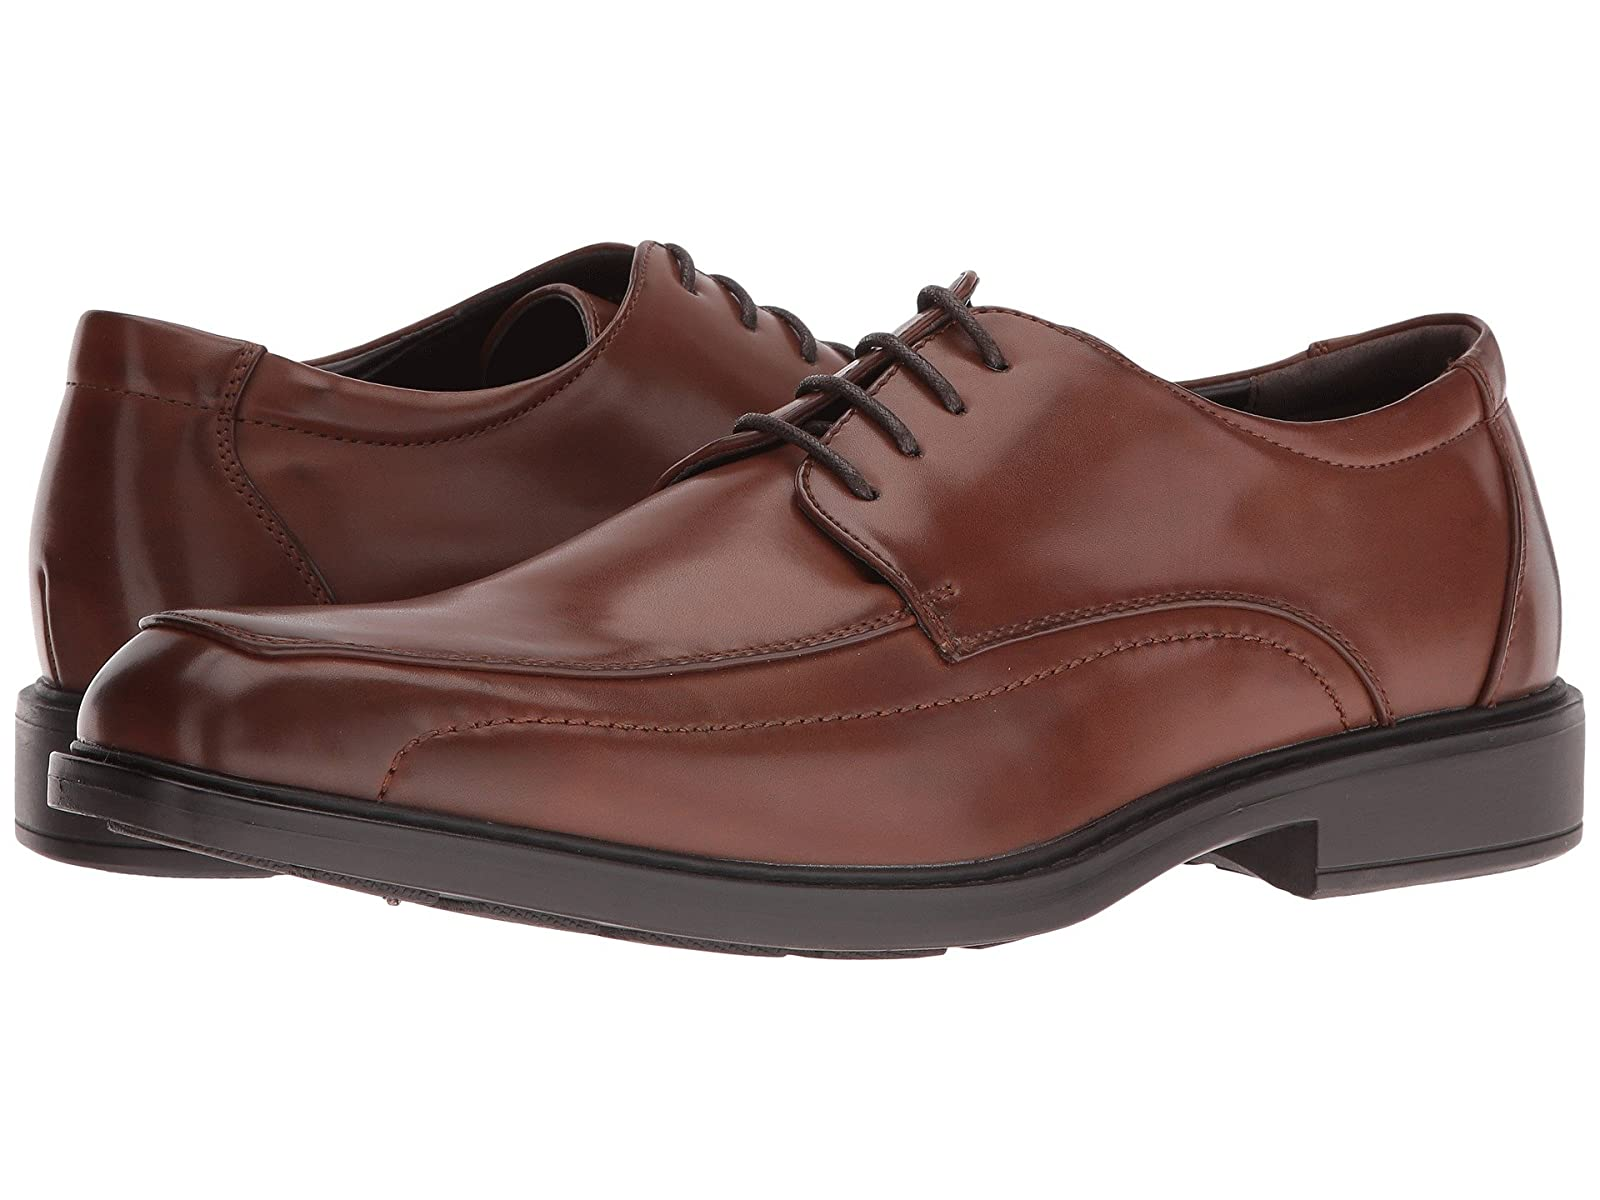 Kenneth Cole Unlisted Secret MissionCheap and distinctive eye-catching shoes